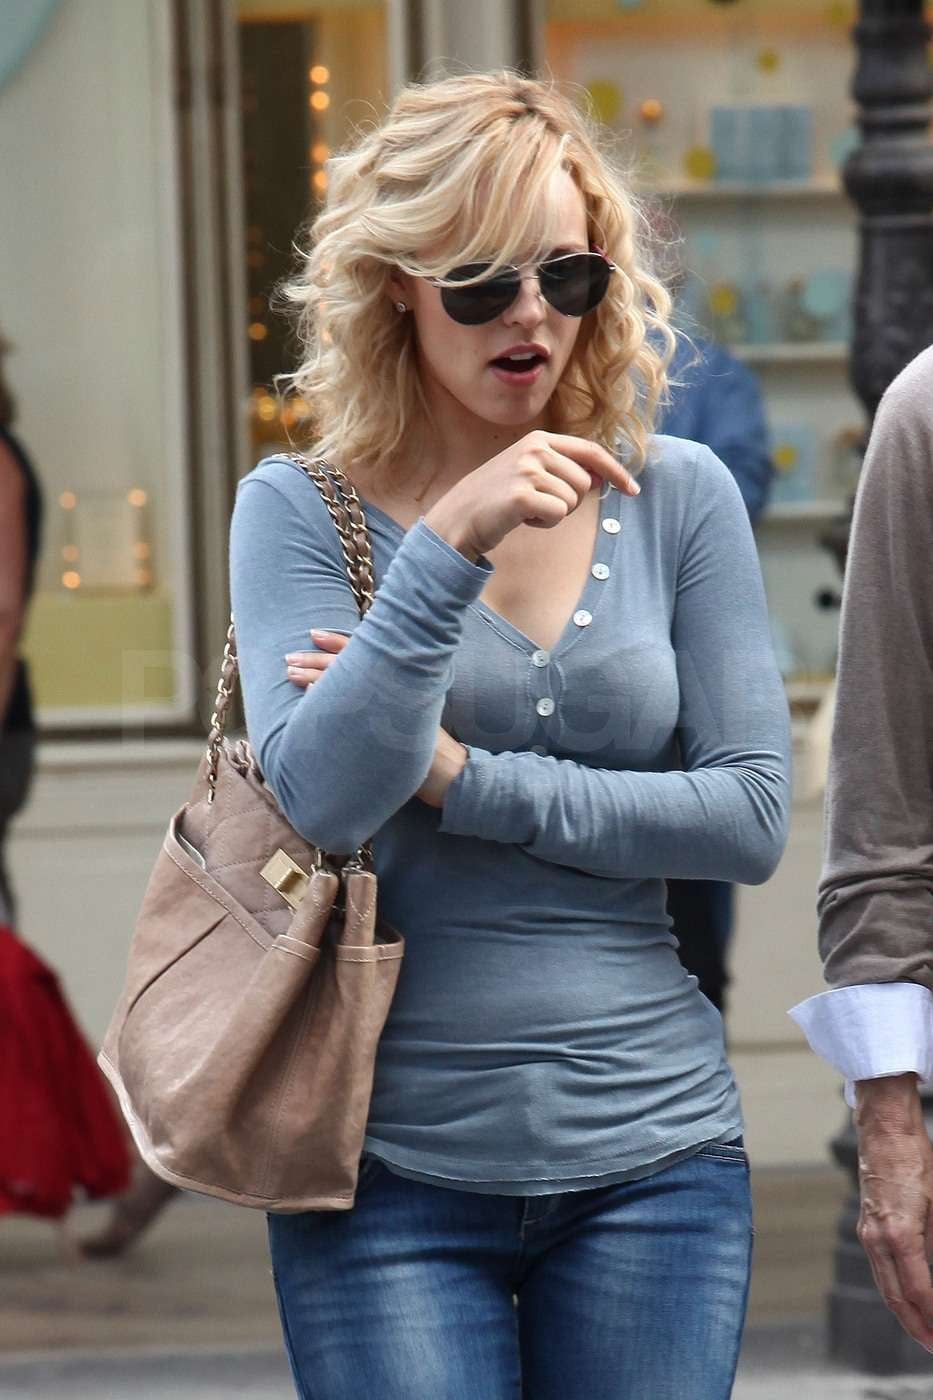 pictures of rachel mcadams on the set of midnight in paris